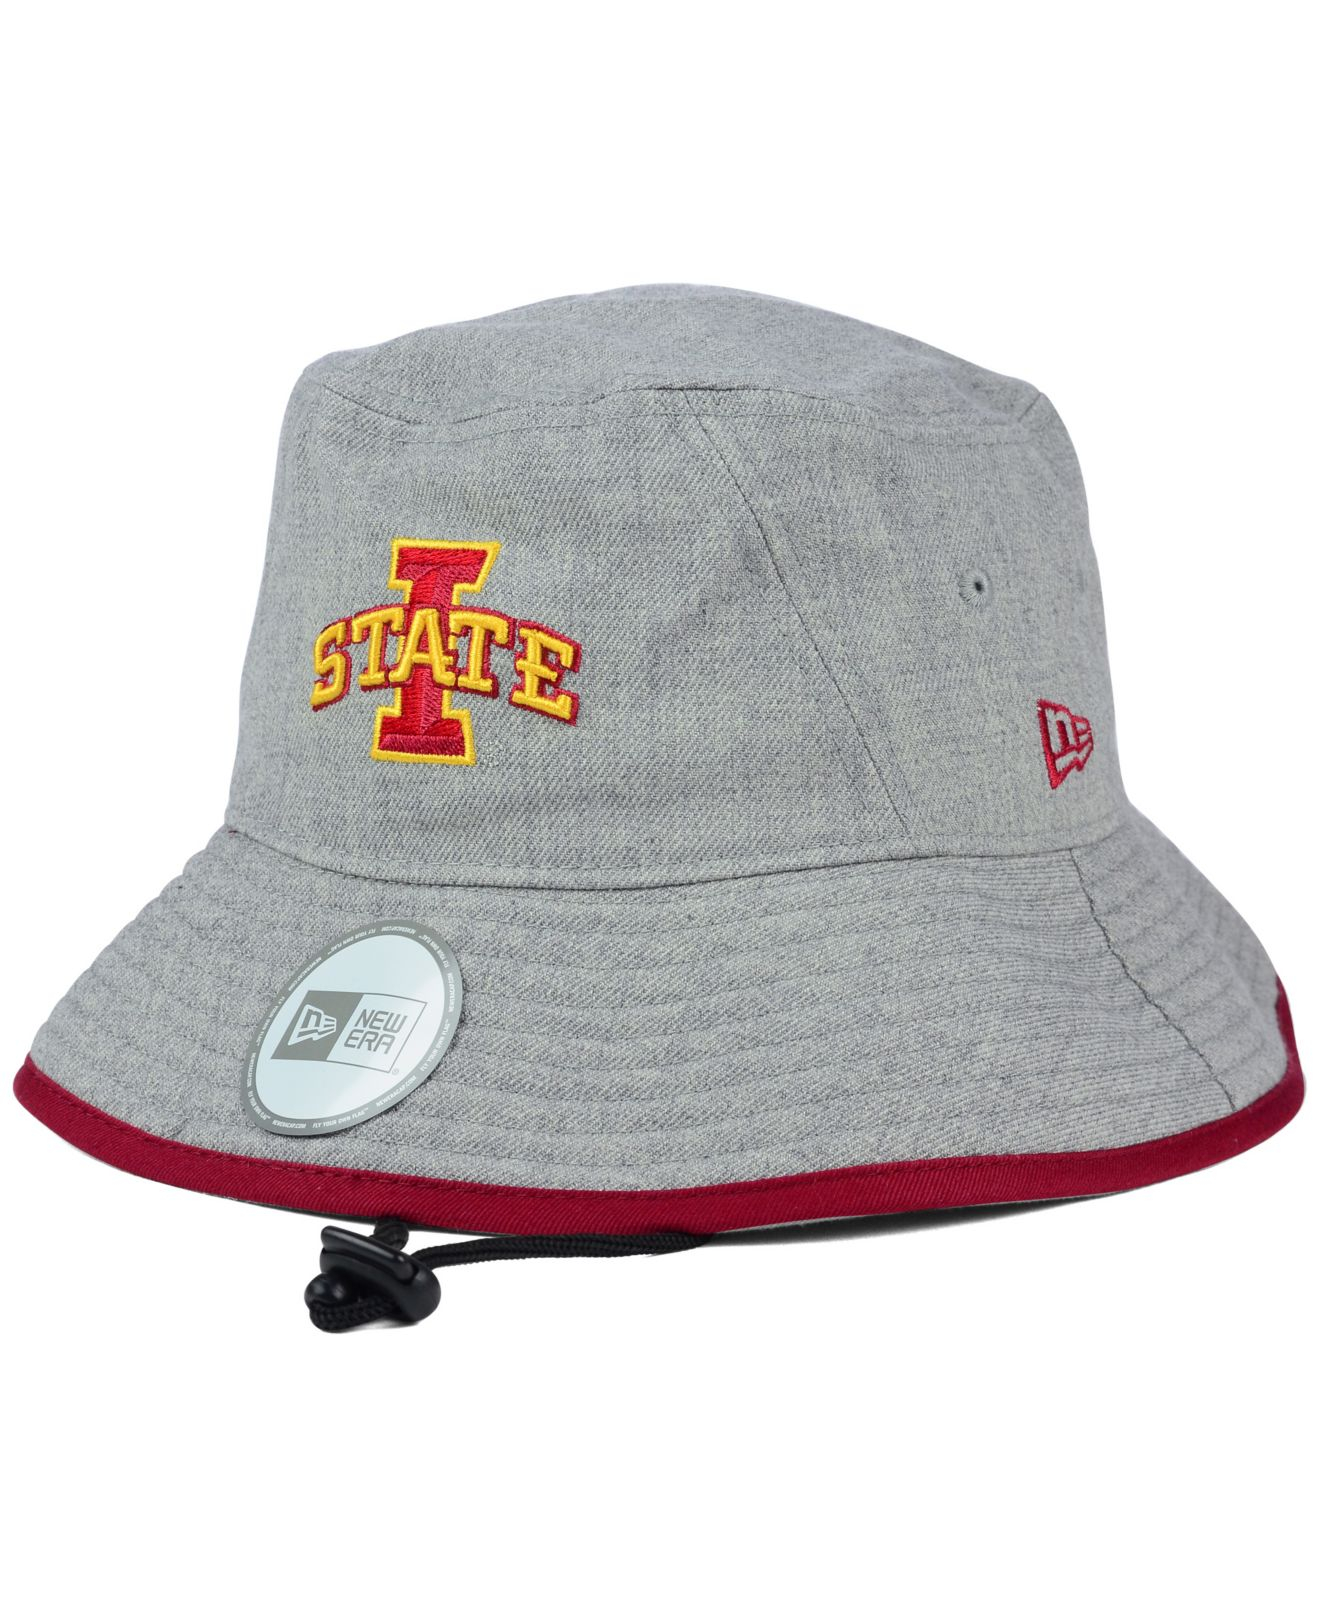 Lyst - KTZ Iowa State Cyclones Tip Bucket Hat in Gray 0a2fefe352ad